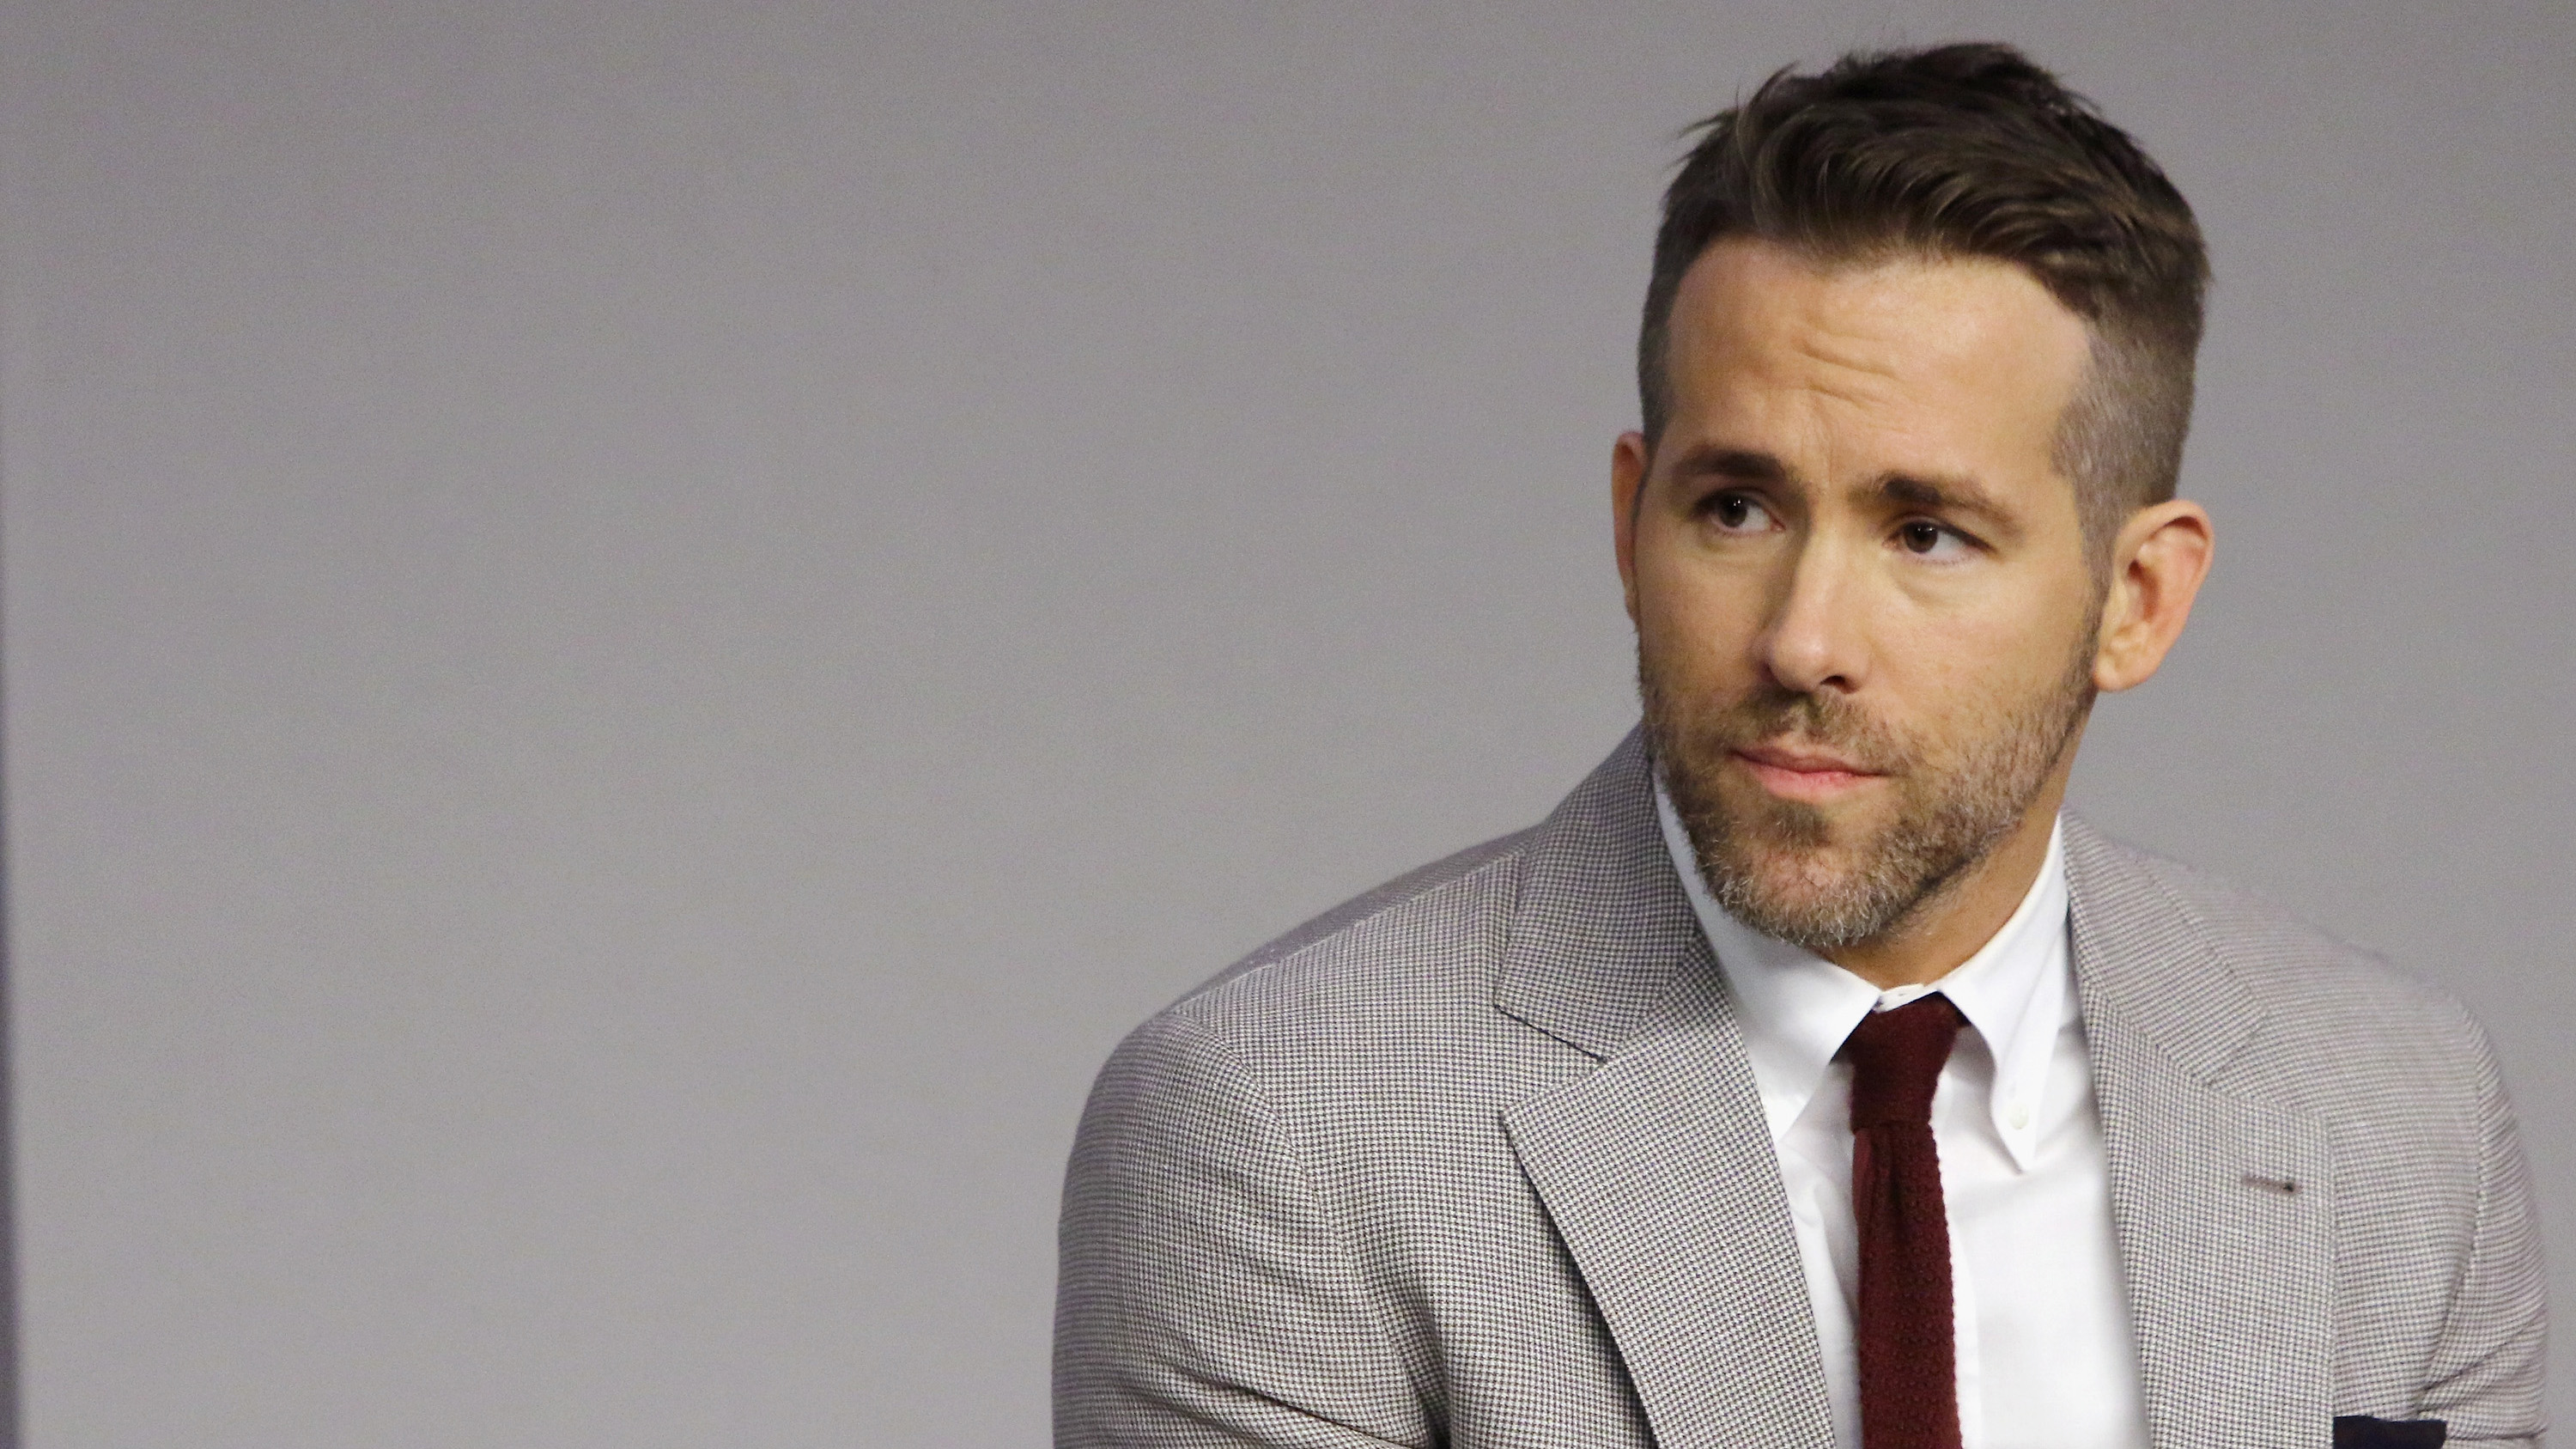 Ryan Reynolds reveals 'one of the best parts' of playing Deadpool